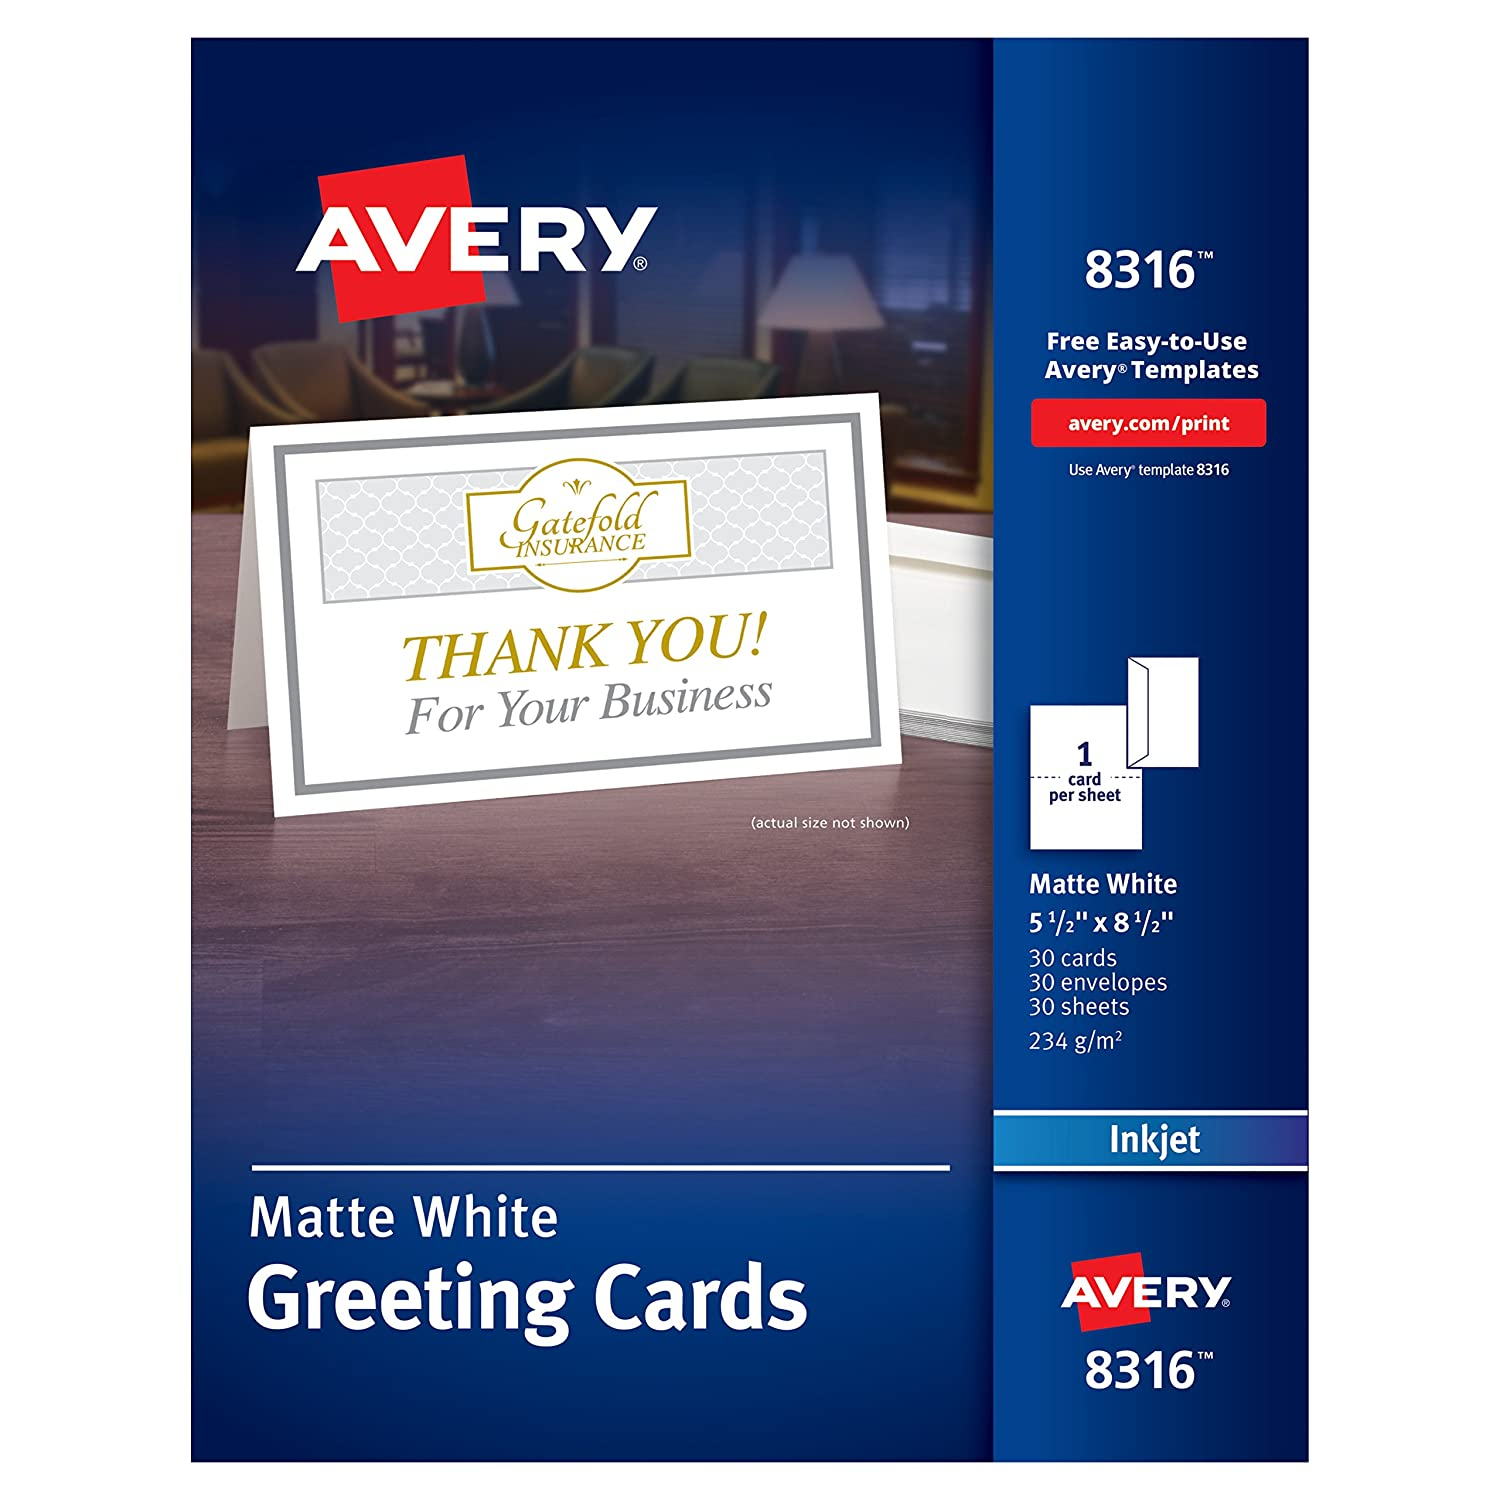 Amazon avery 8316 half fold greeting cards inkjet 5 12 x amazon avery 8316 half fold greeting cards inkjet 5 12 x 8 12 matte white box of 30 with envelopes inkjet printer paper office products kristyandbryce Image collections